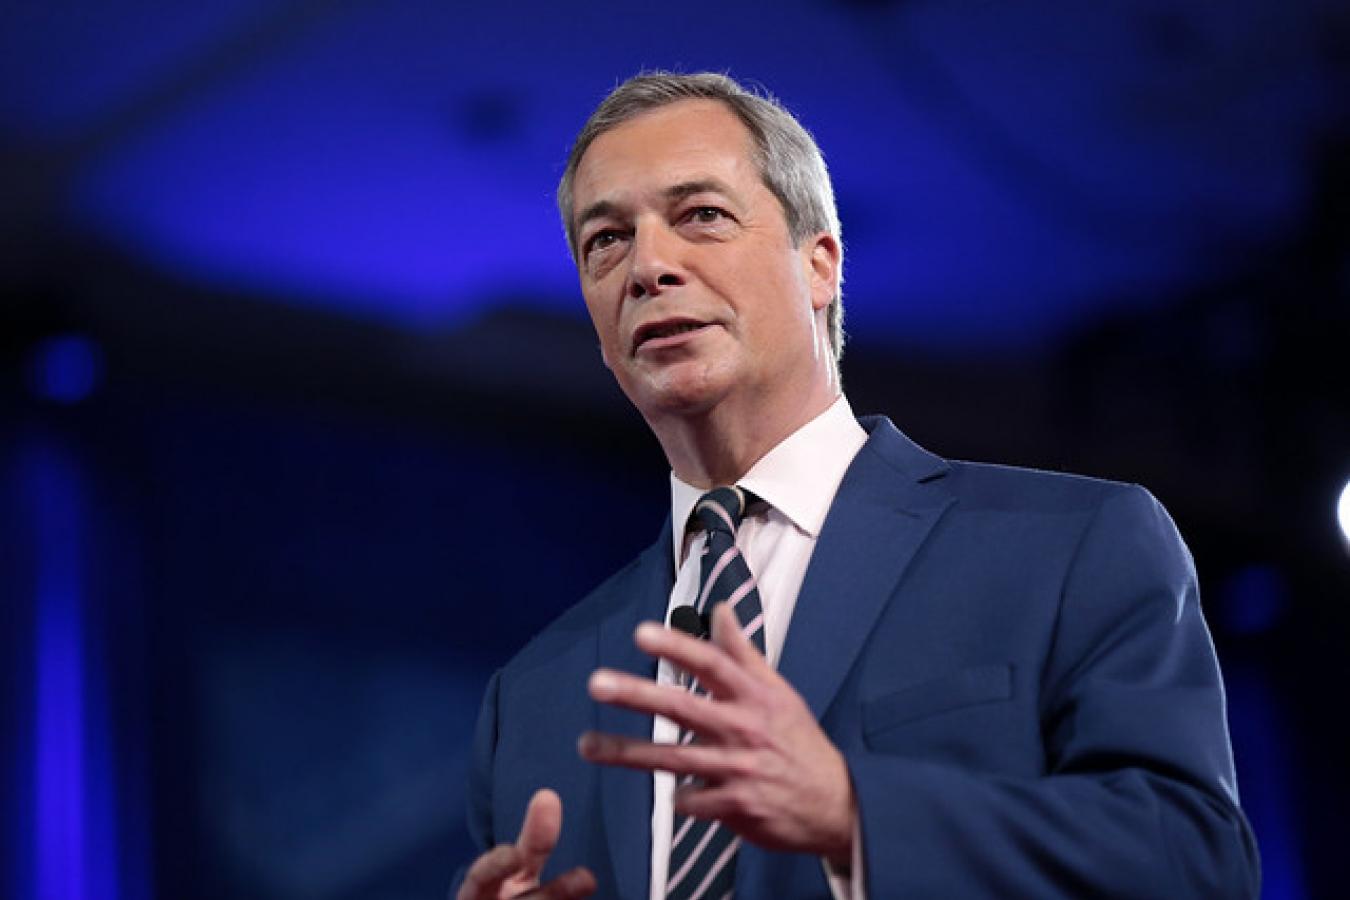 Nigel Farage Leader of Brexit Party and founder of UKIP